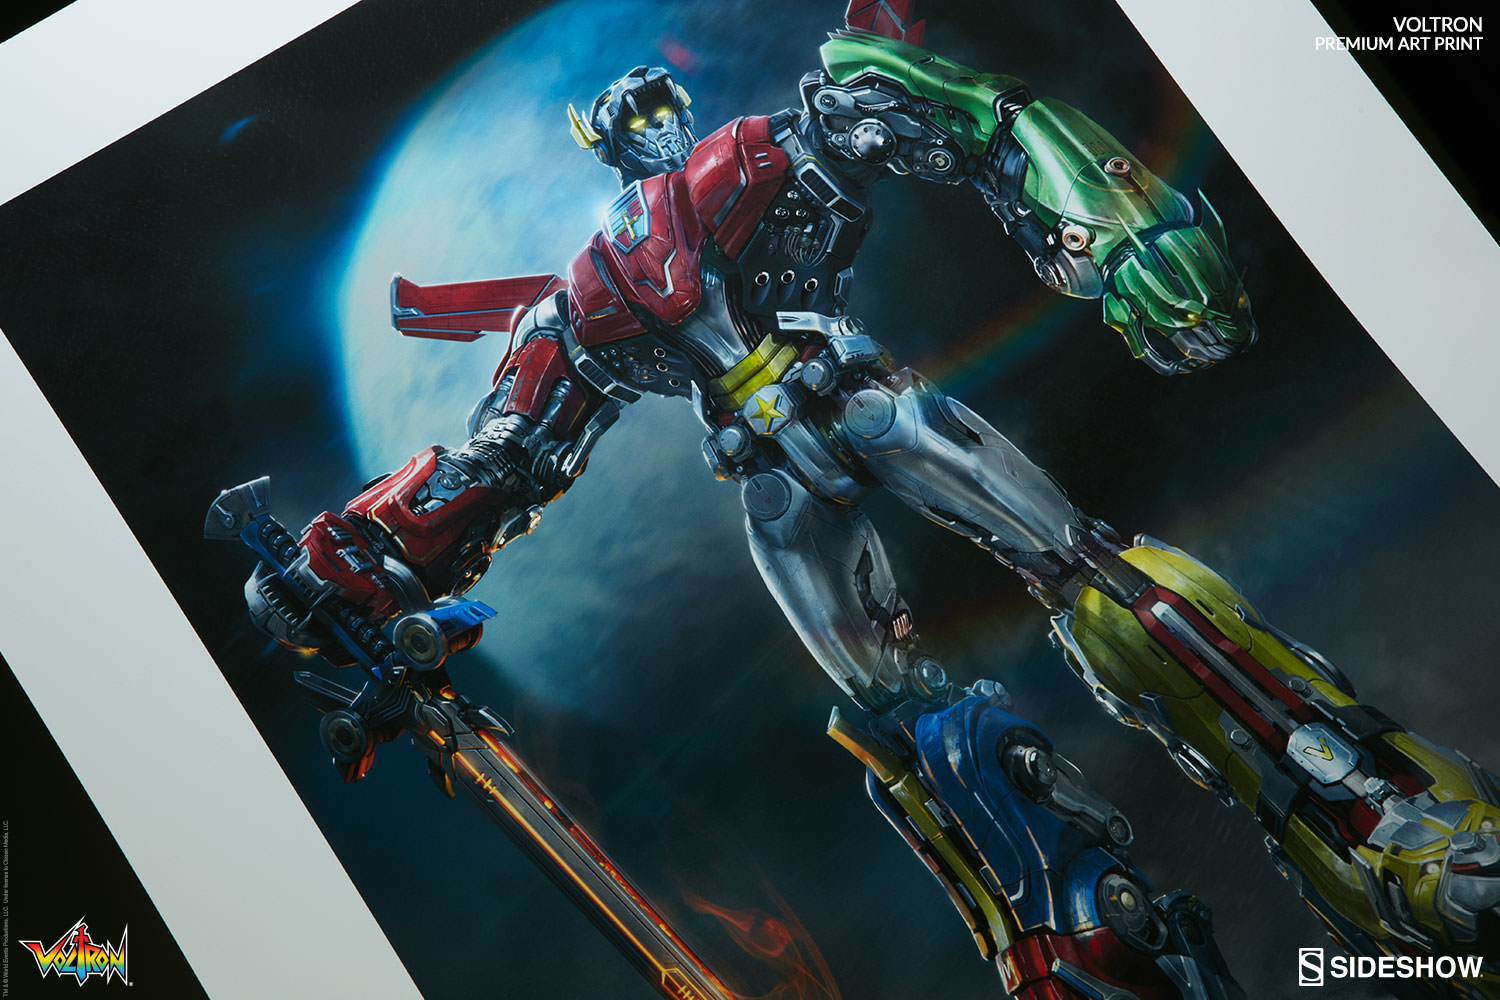 Sideshow Unveil Voltron Defender Of The Universe Premium